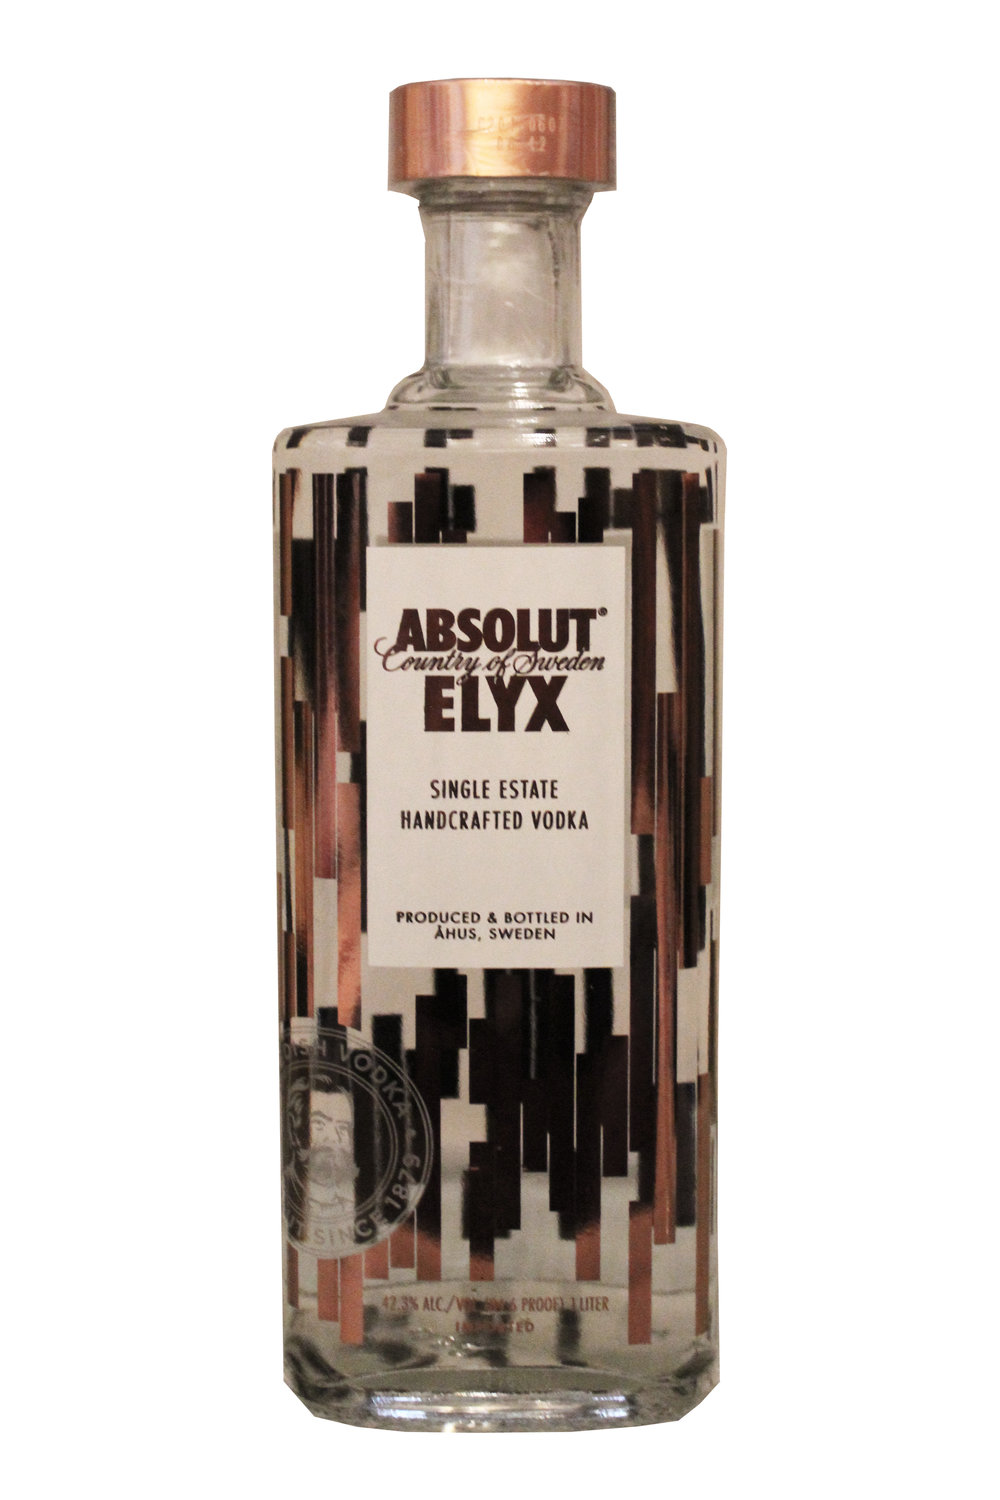 Single Estate Handcrafted Vodka Absolute Elyx, Sweden